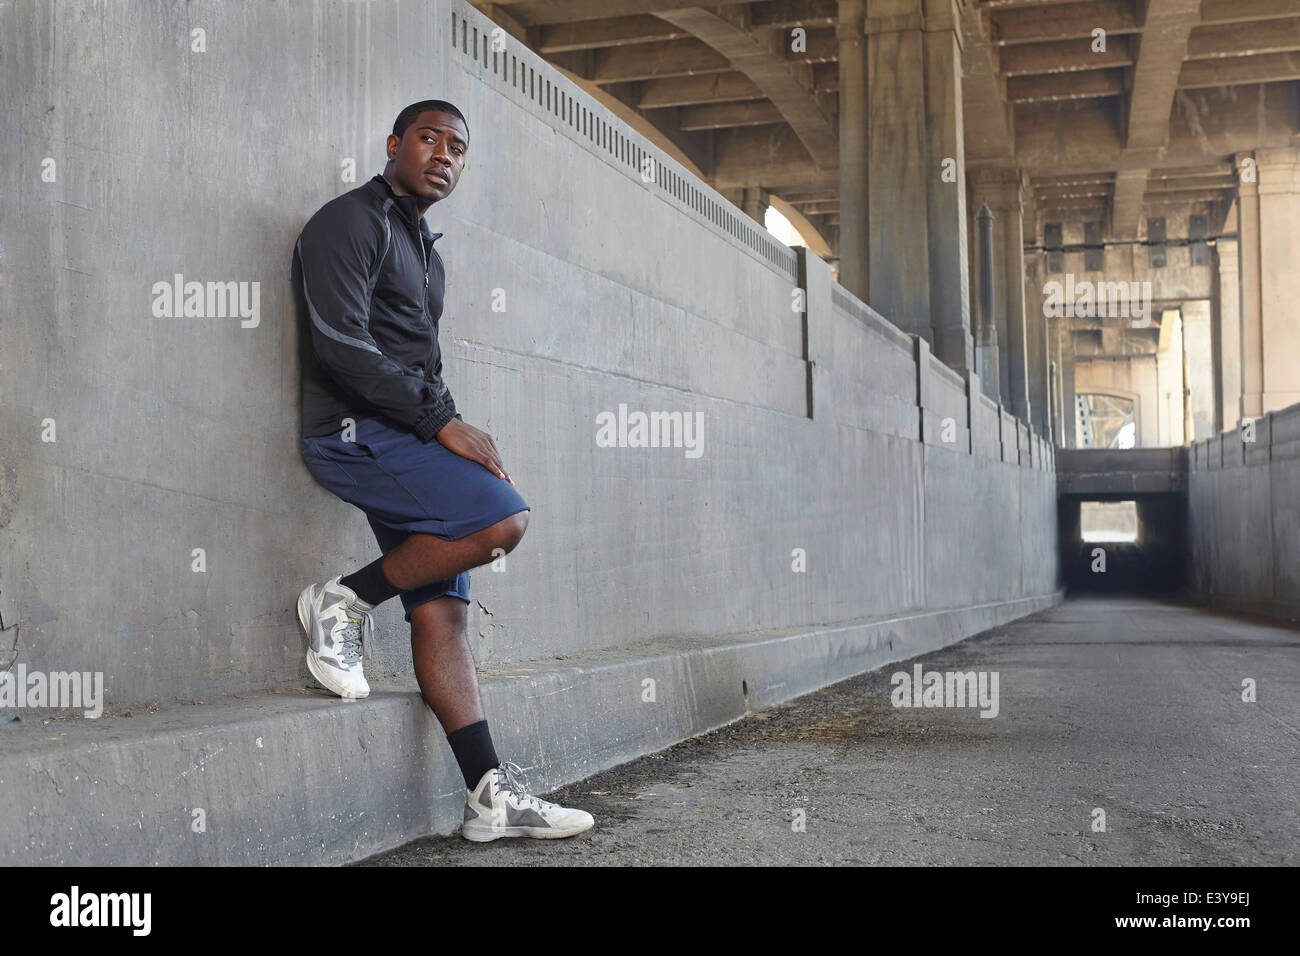 Young male runner en faisant une pause sur le pont de la ville Photo Stock